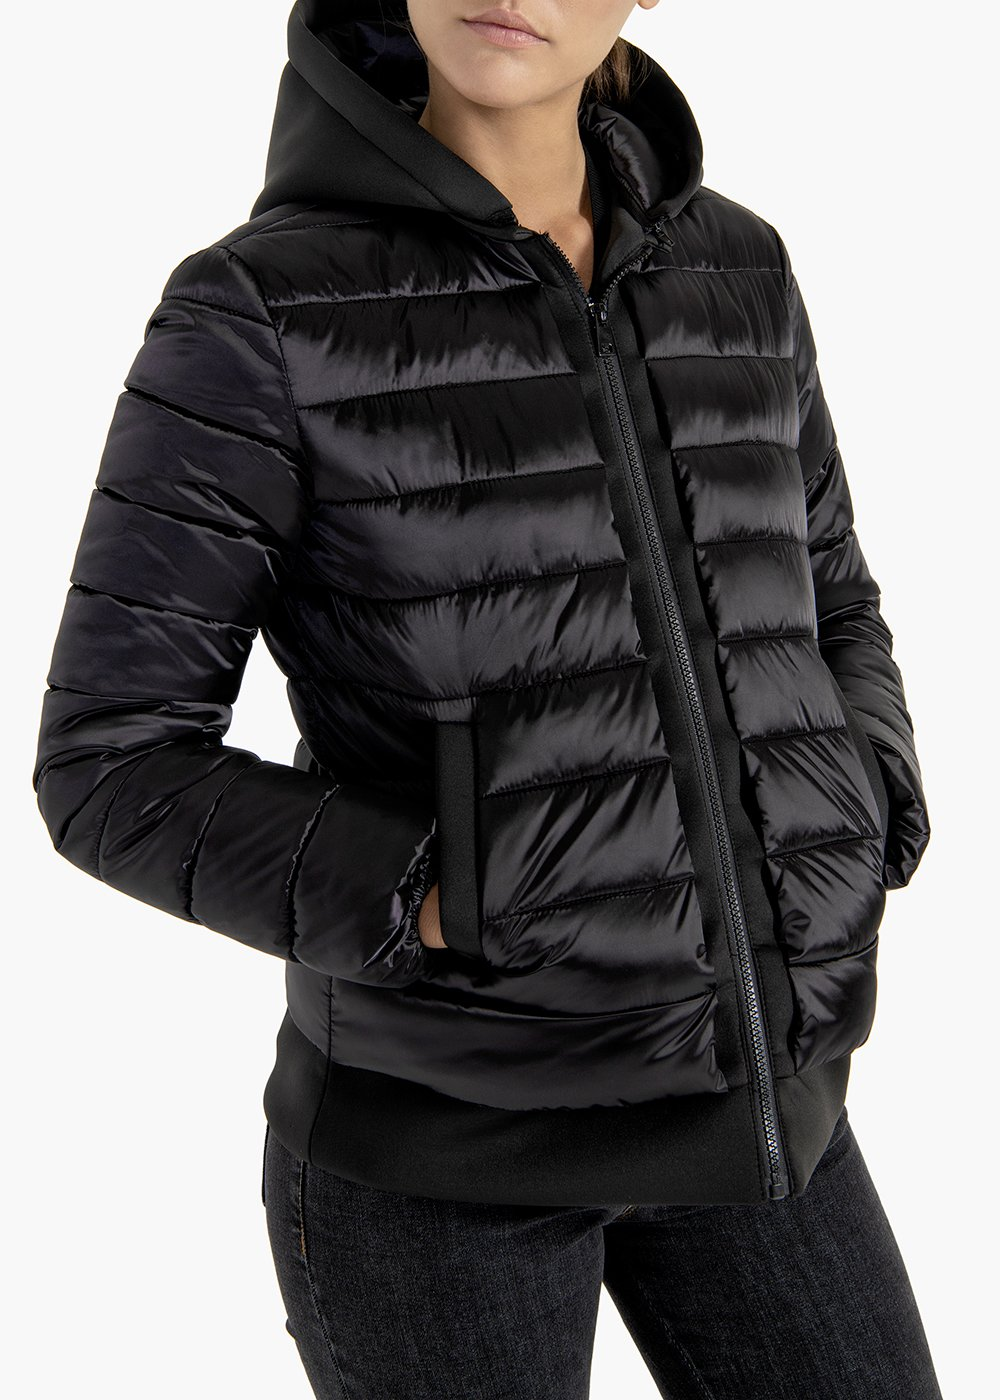 Quilted jacket Platon in satin effect fabric with hood - Black - Woman